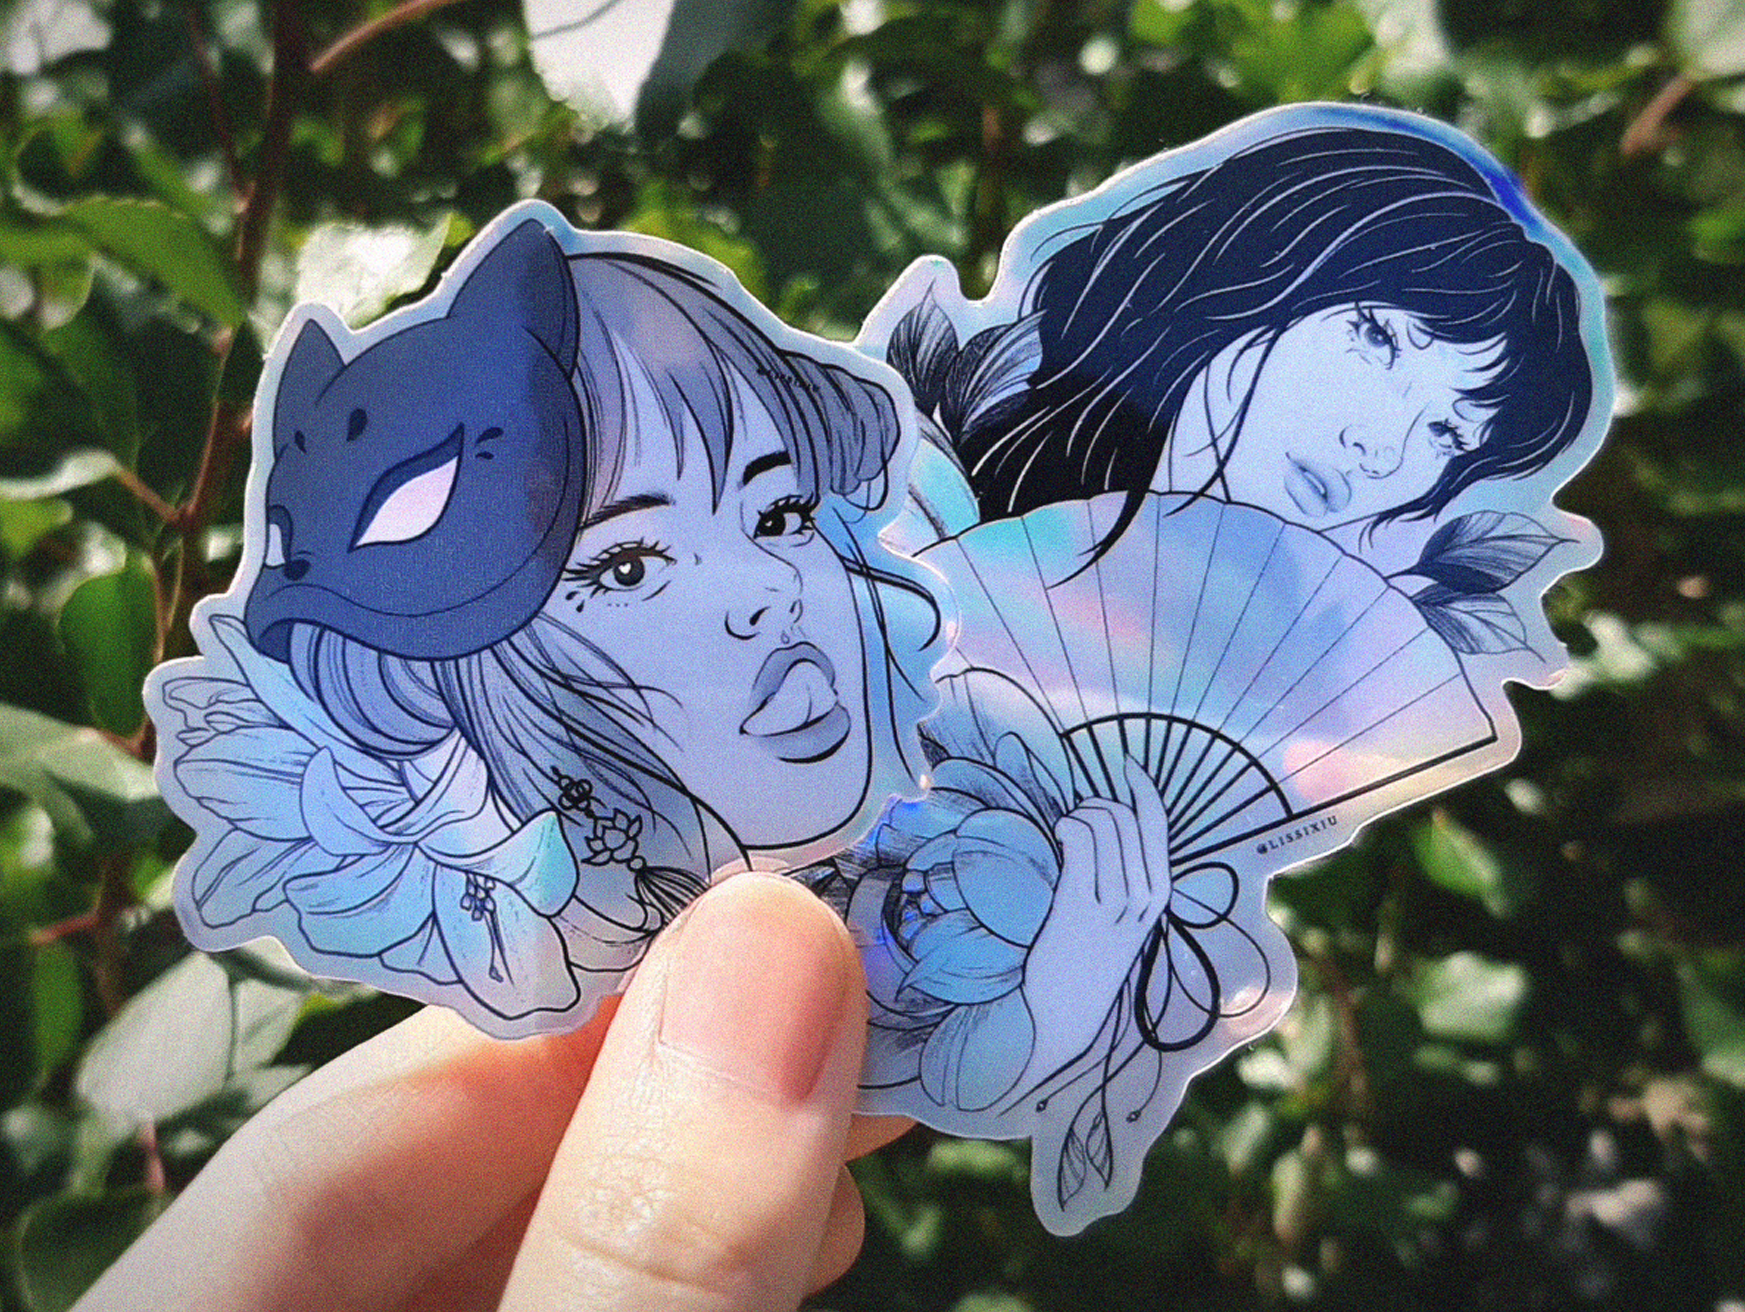 Holographic stickers